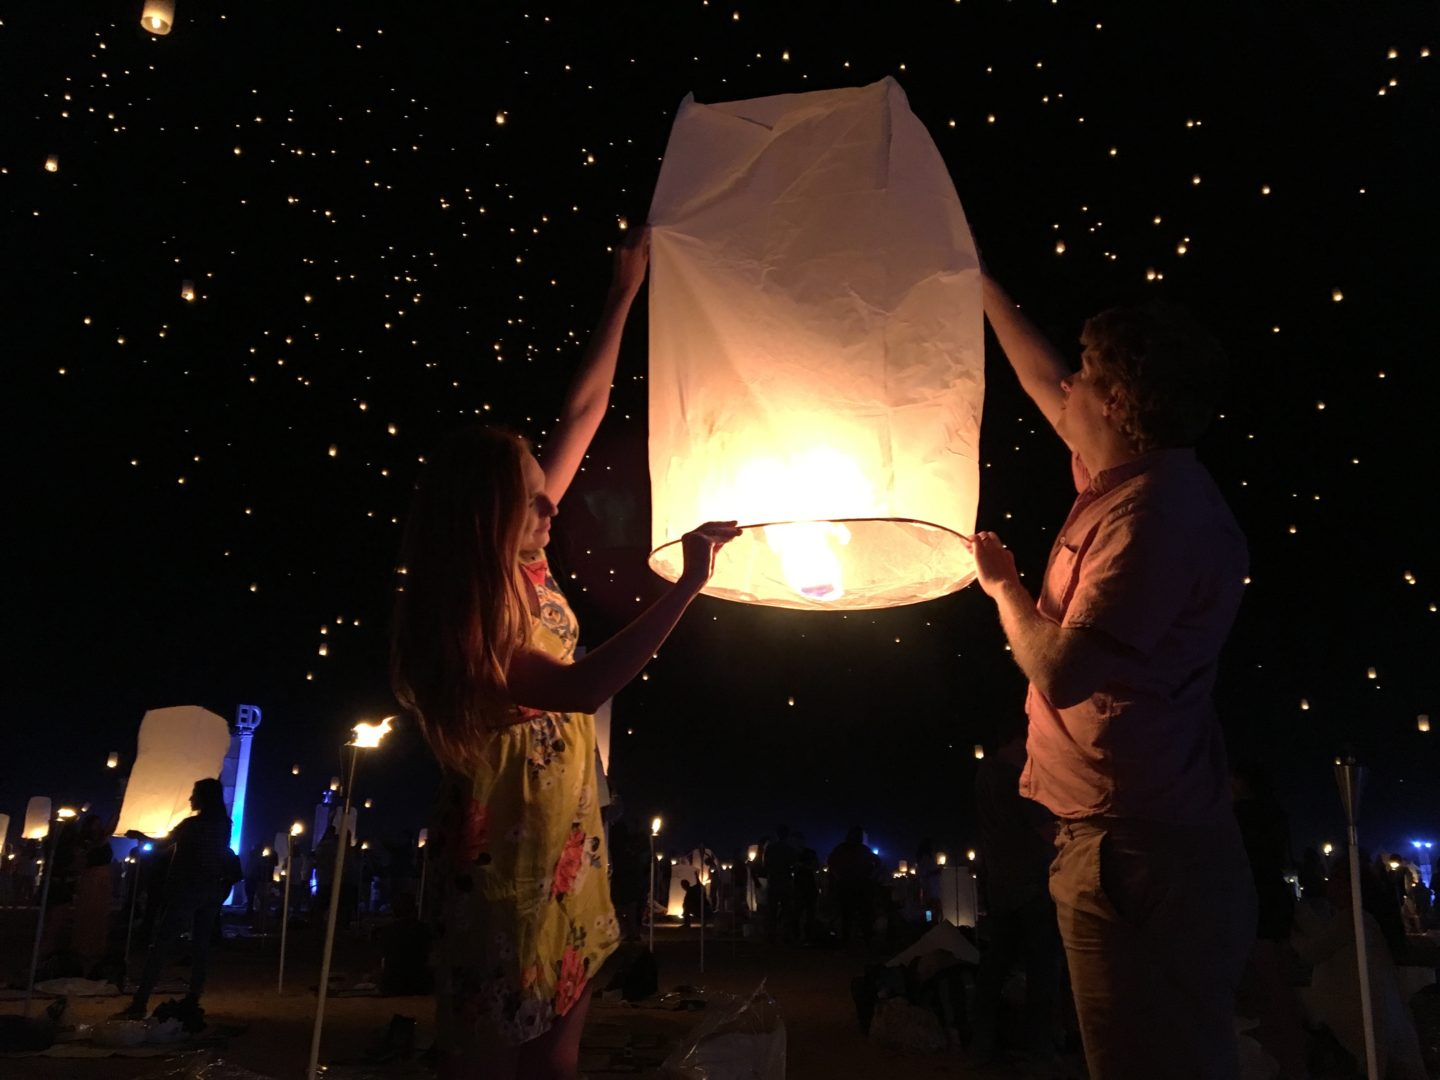 Surprise Birthday trip to RiSE Lantern Festival